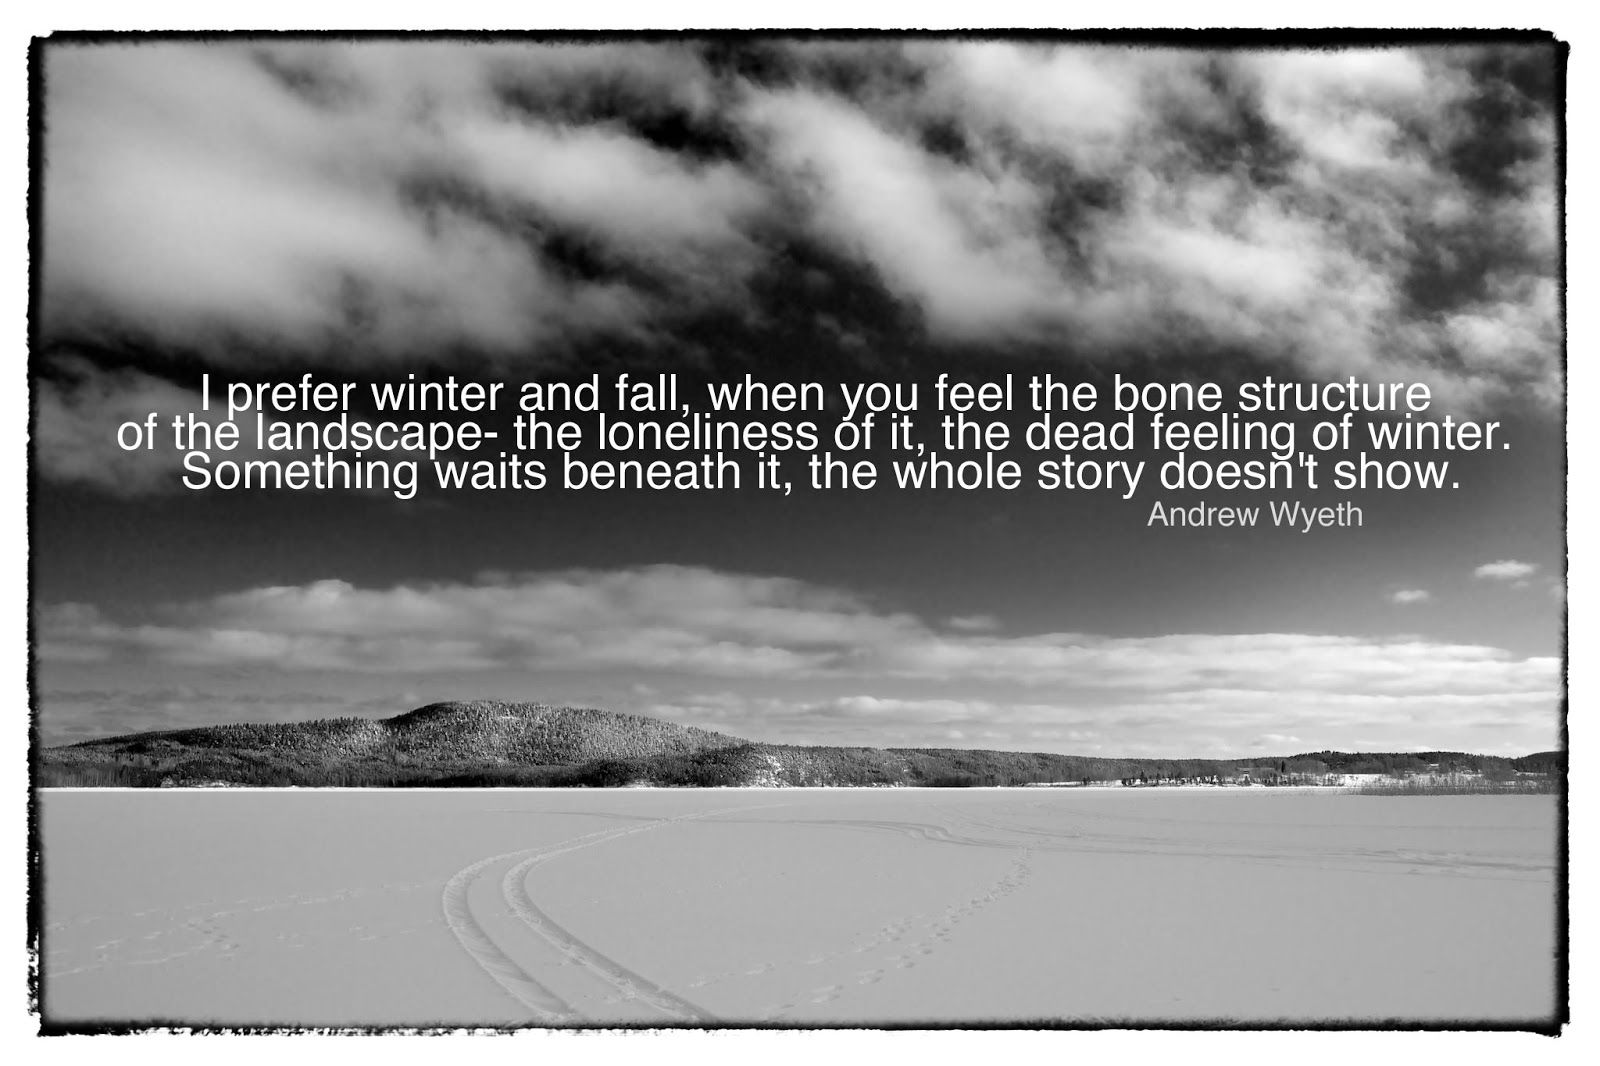 A Beautiful Quote About Winter On A Black And White P O I Took This Week Out